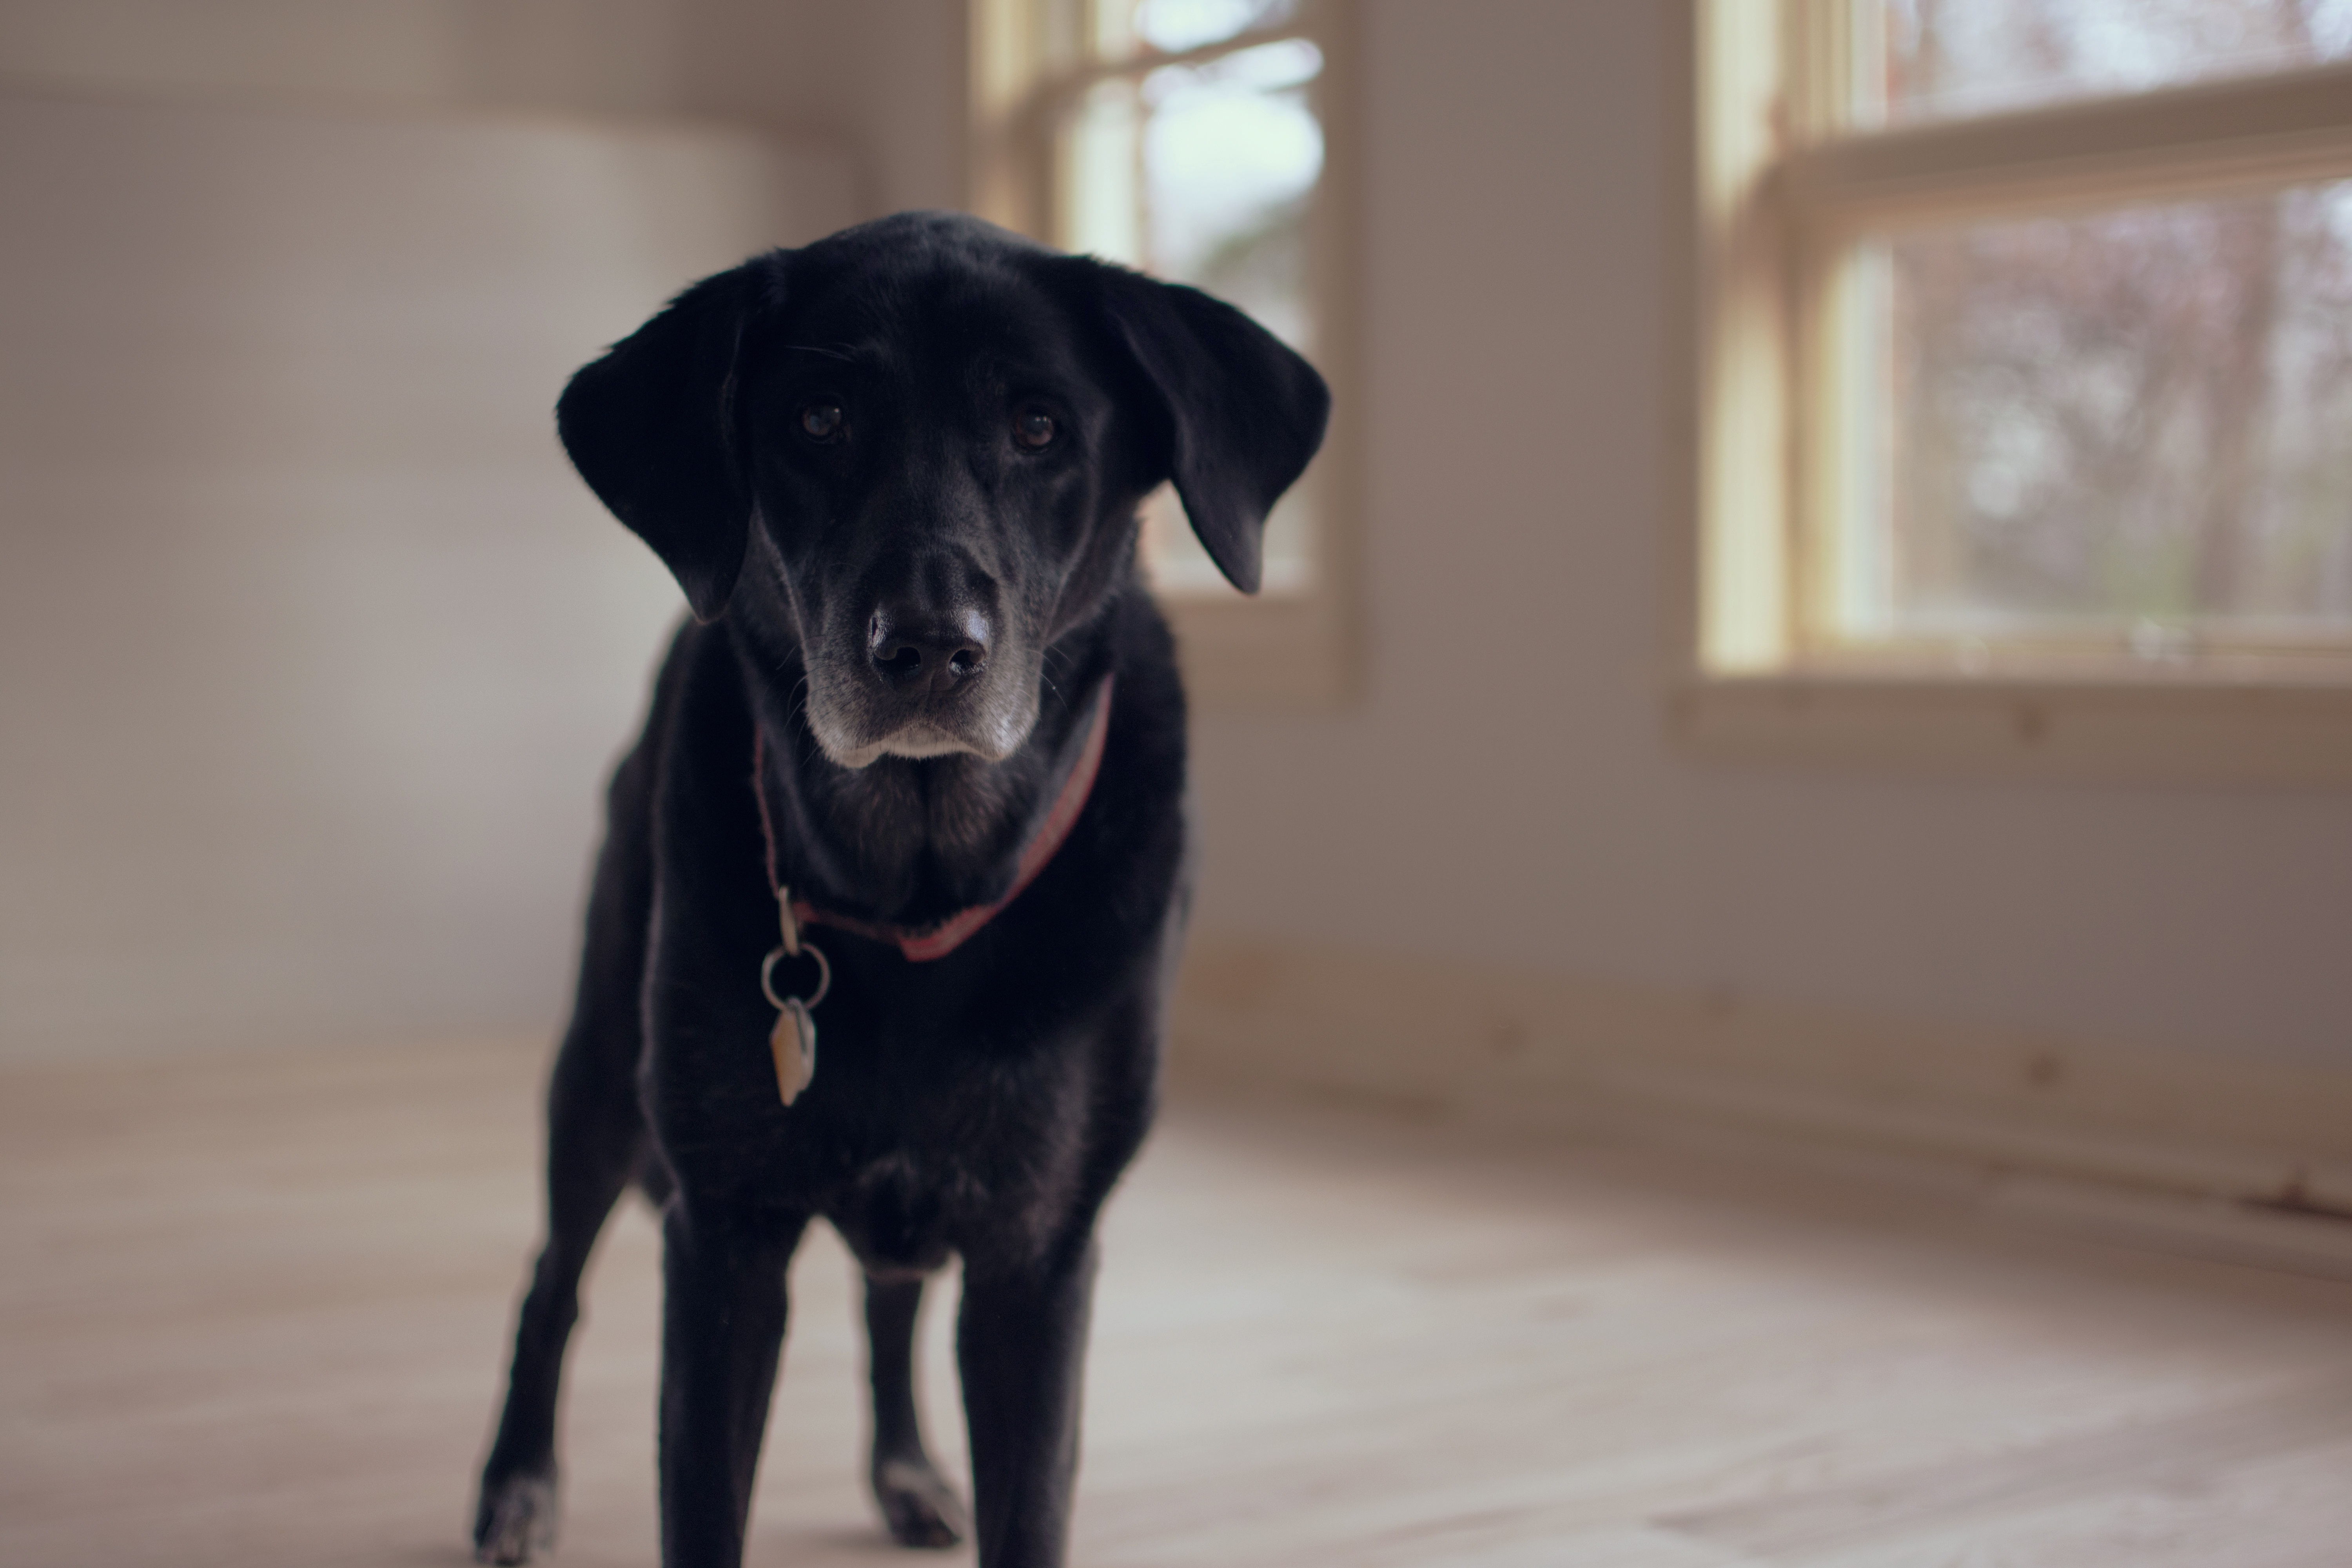 53737 Screensavers and Wallpapers Collar for phone. Download Animals, Dog, Collar, Labrador Retriever pictures for free